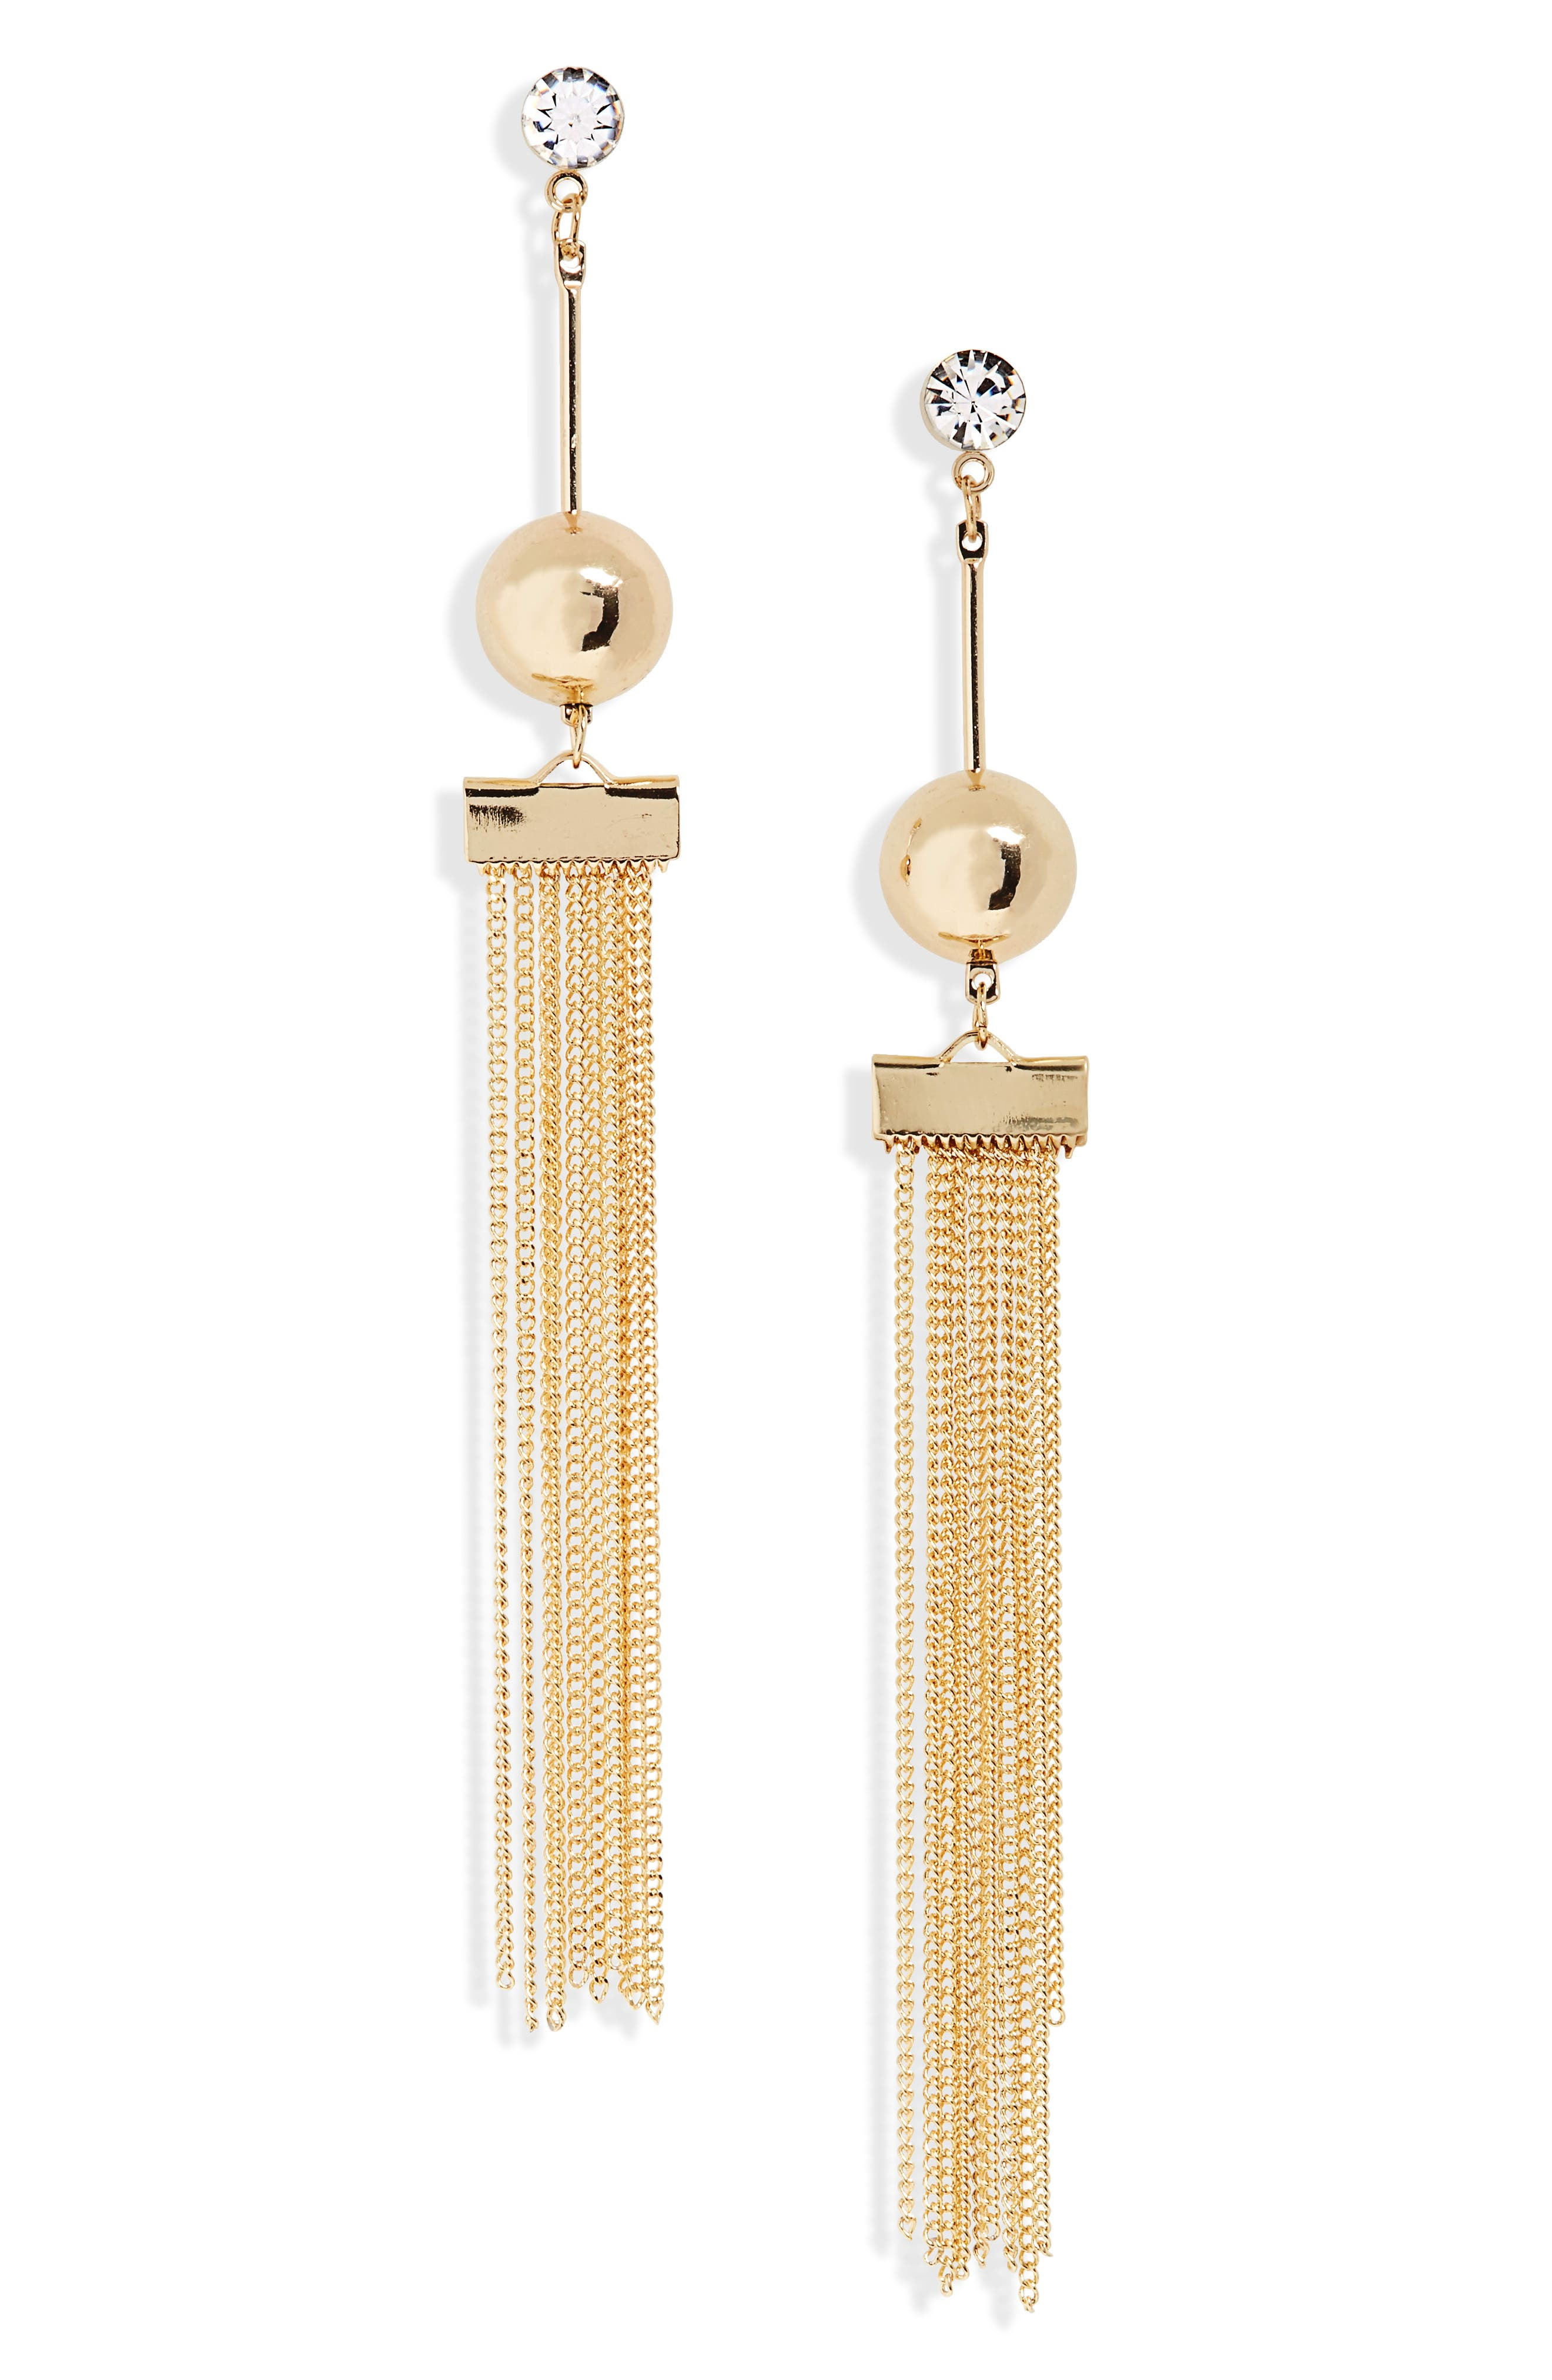 Ball and Chain Earrings,                         Main,                         color, Gold